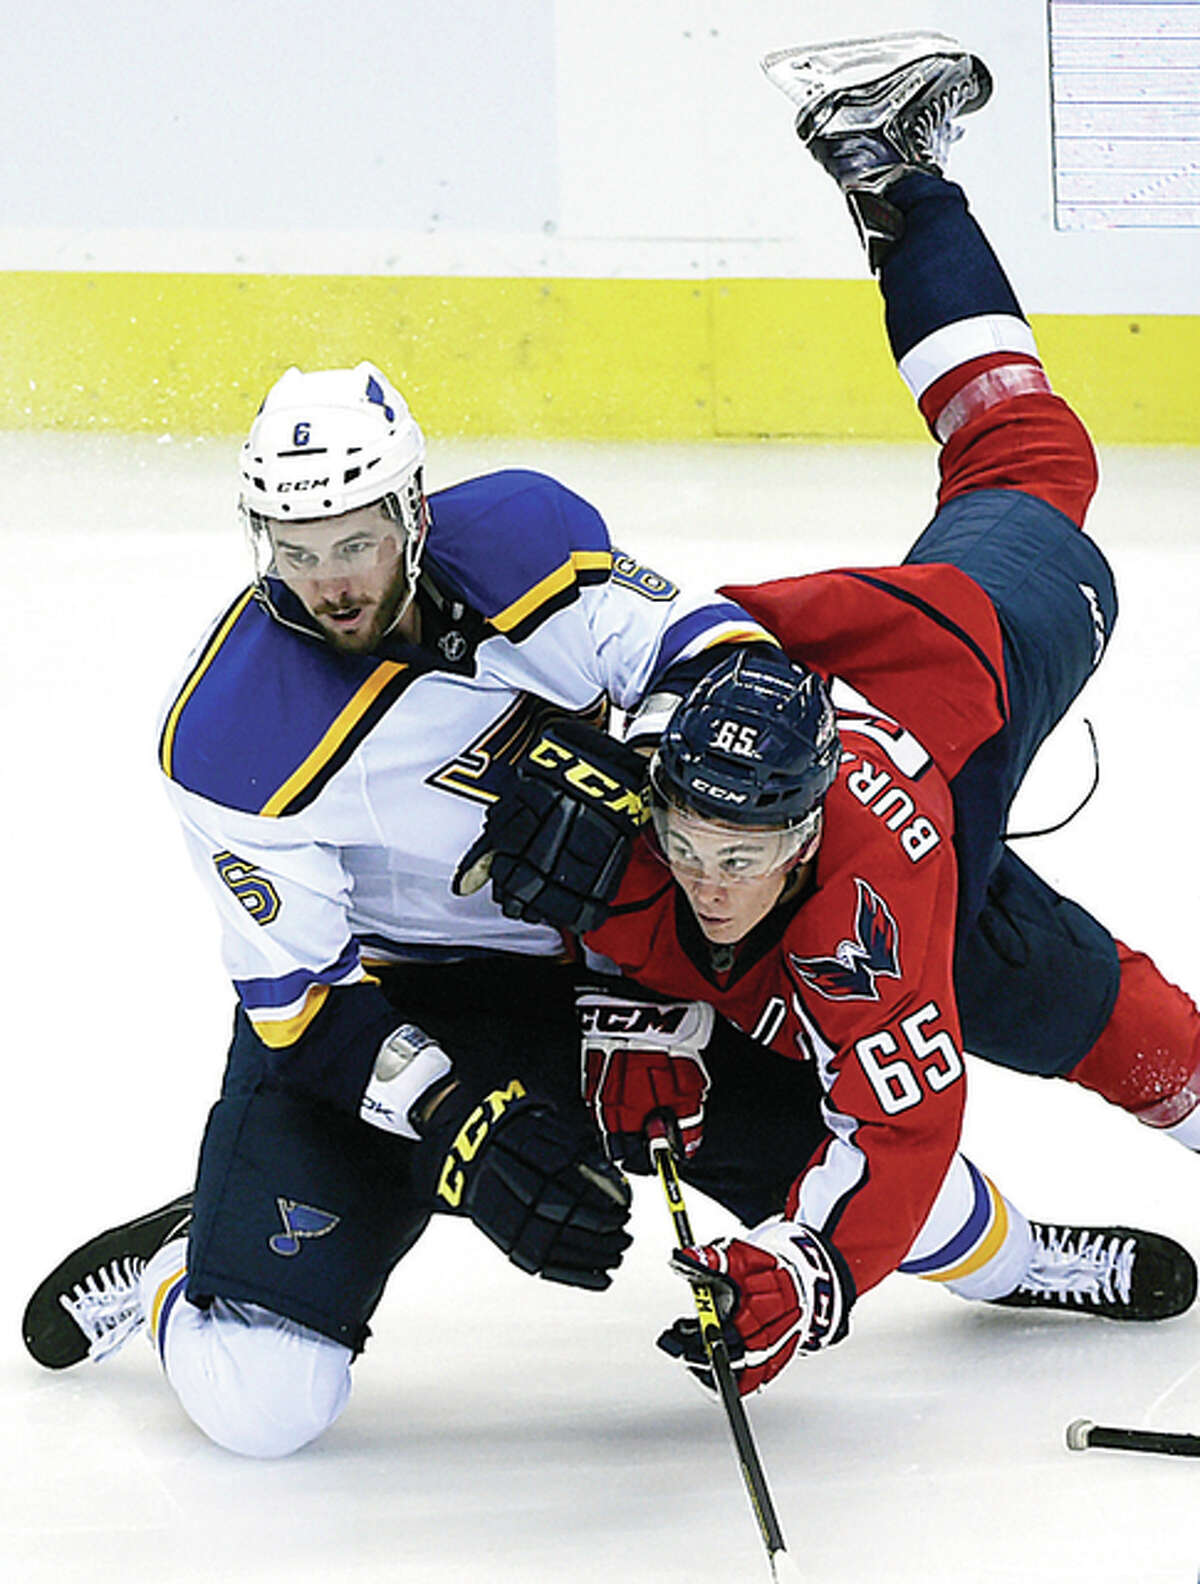 Washington Capitals left wing Andre Burakovsky (65) trips over Blues defenseman Joel Edmundson while chasing the puck in a preseason game Monday in Washington.